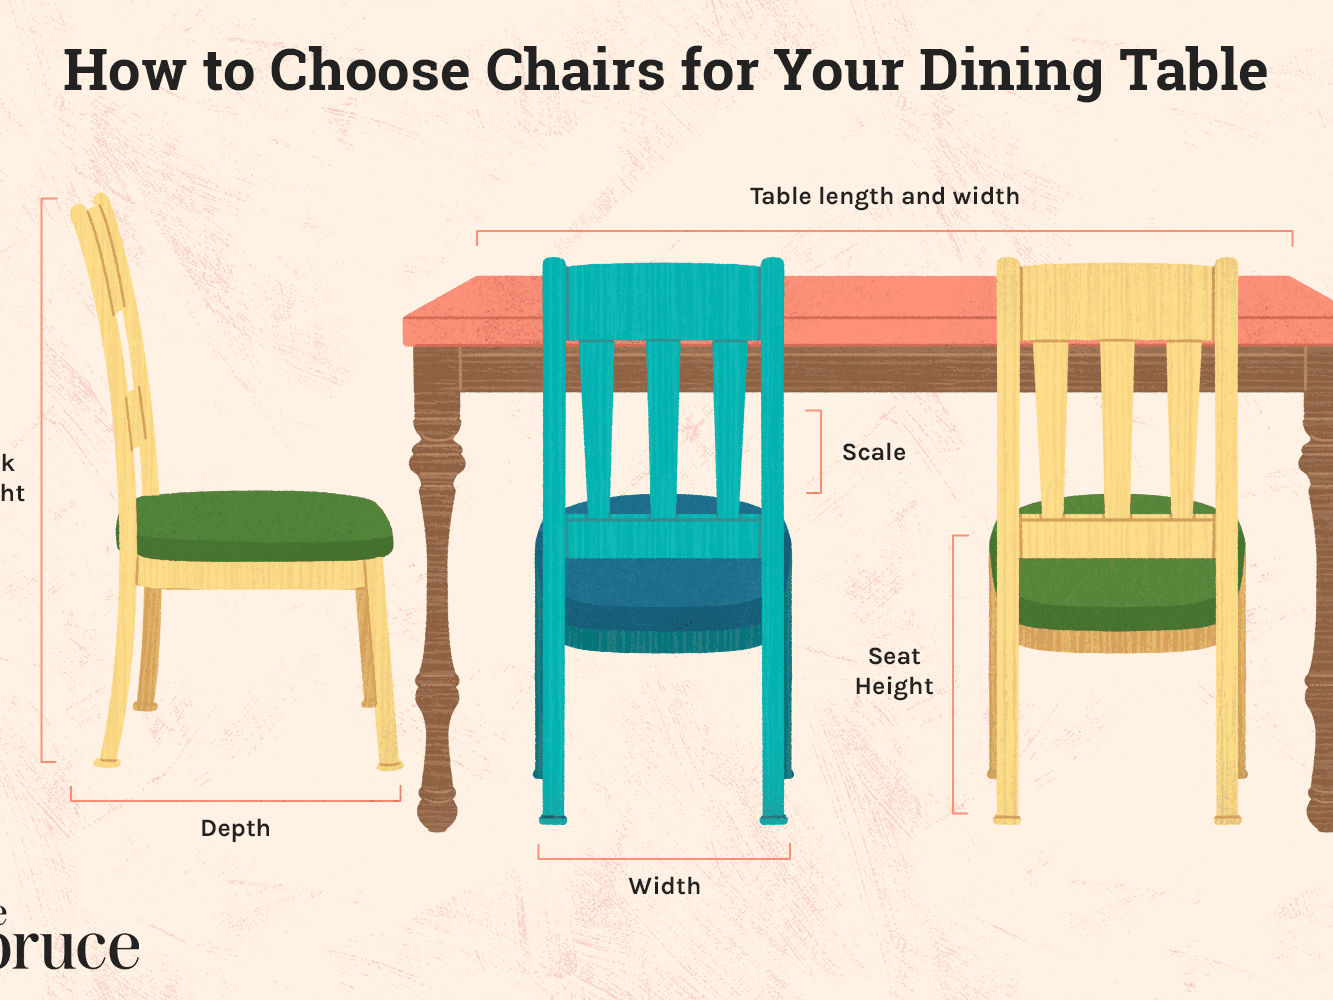 How To Choose Chairs For Your Dining Table, Dining Room Chair Seat Dimensions